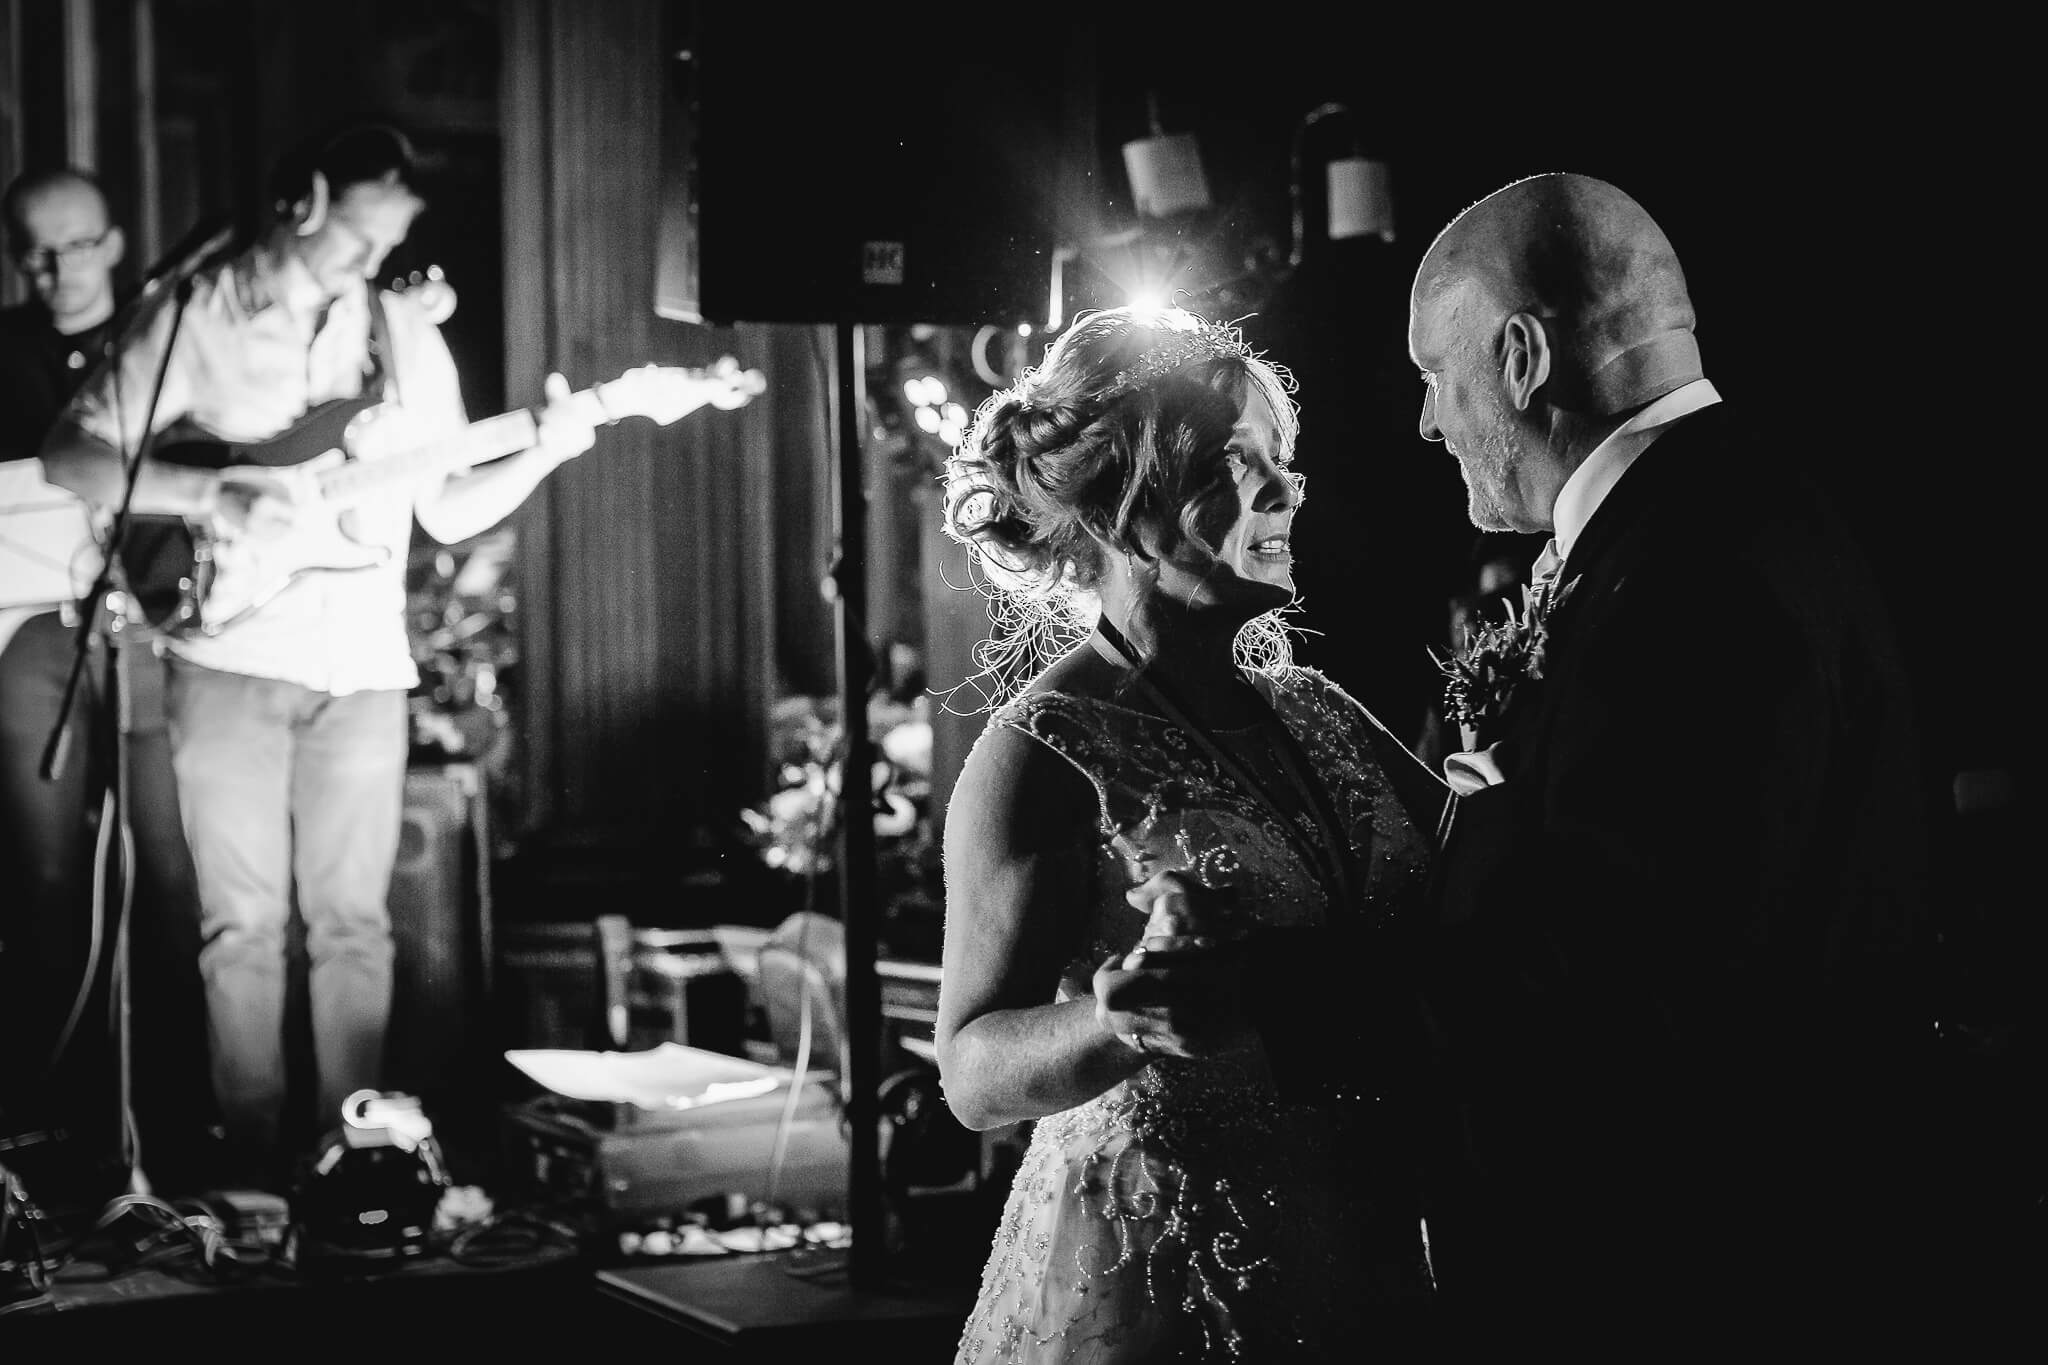 best-wedding-photographers-uk-europe-stanbury-photography-156